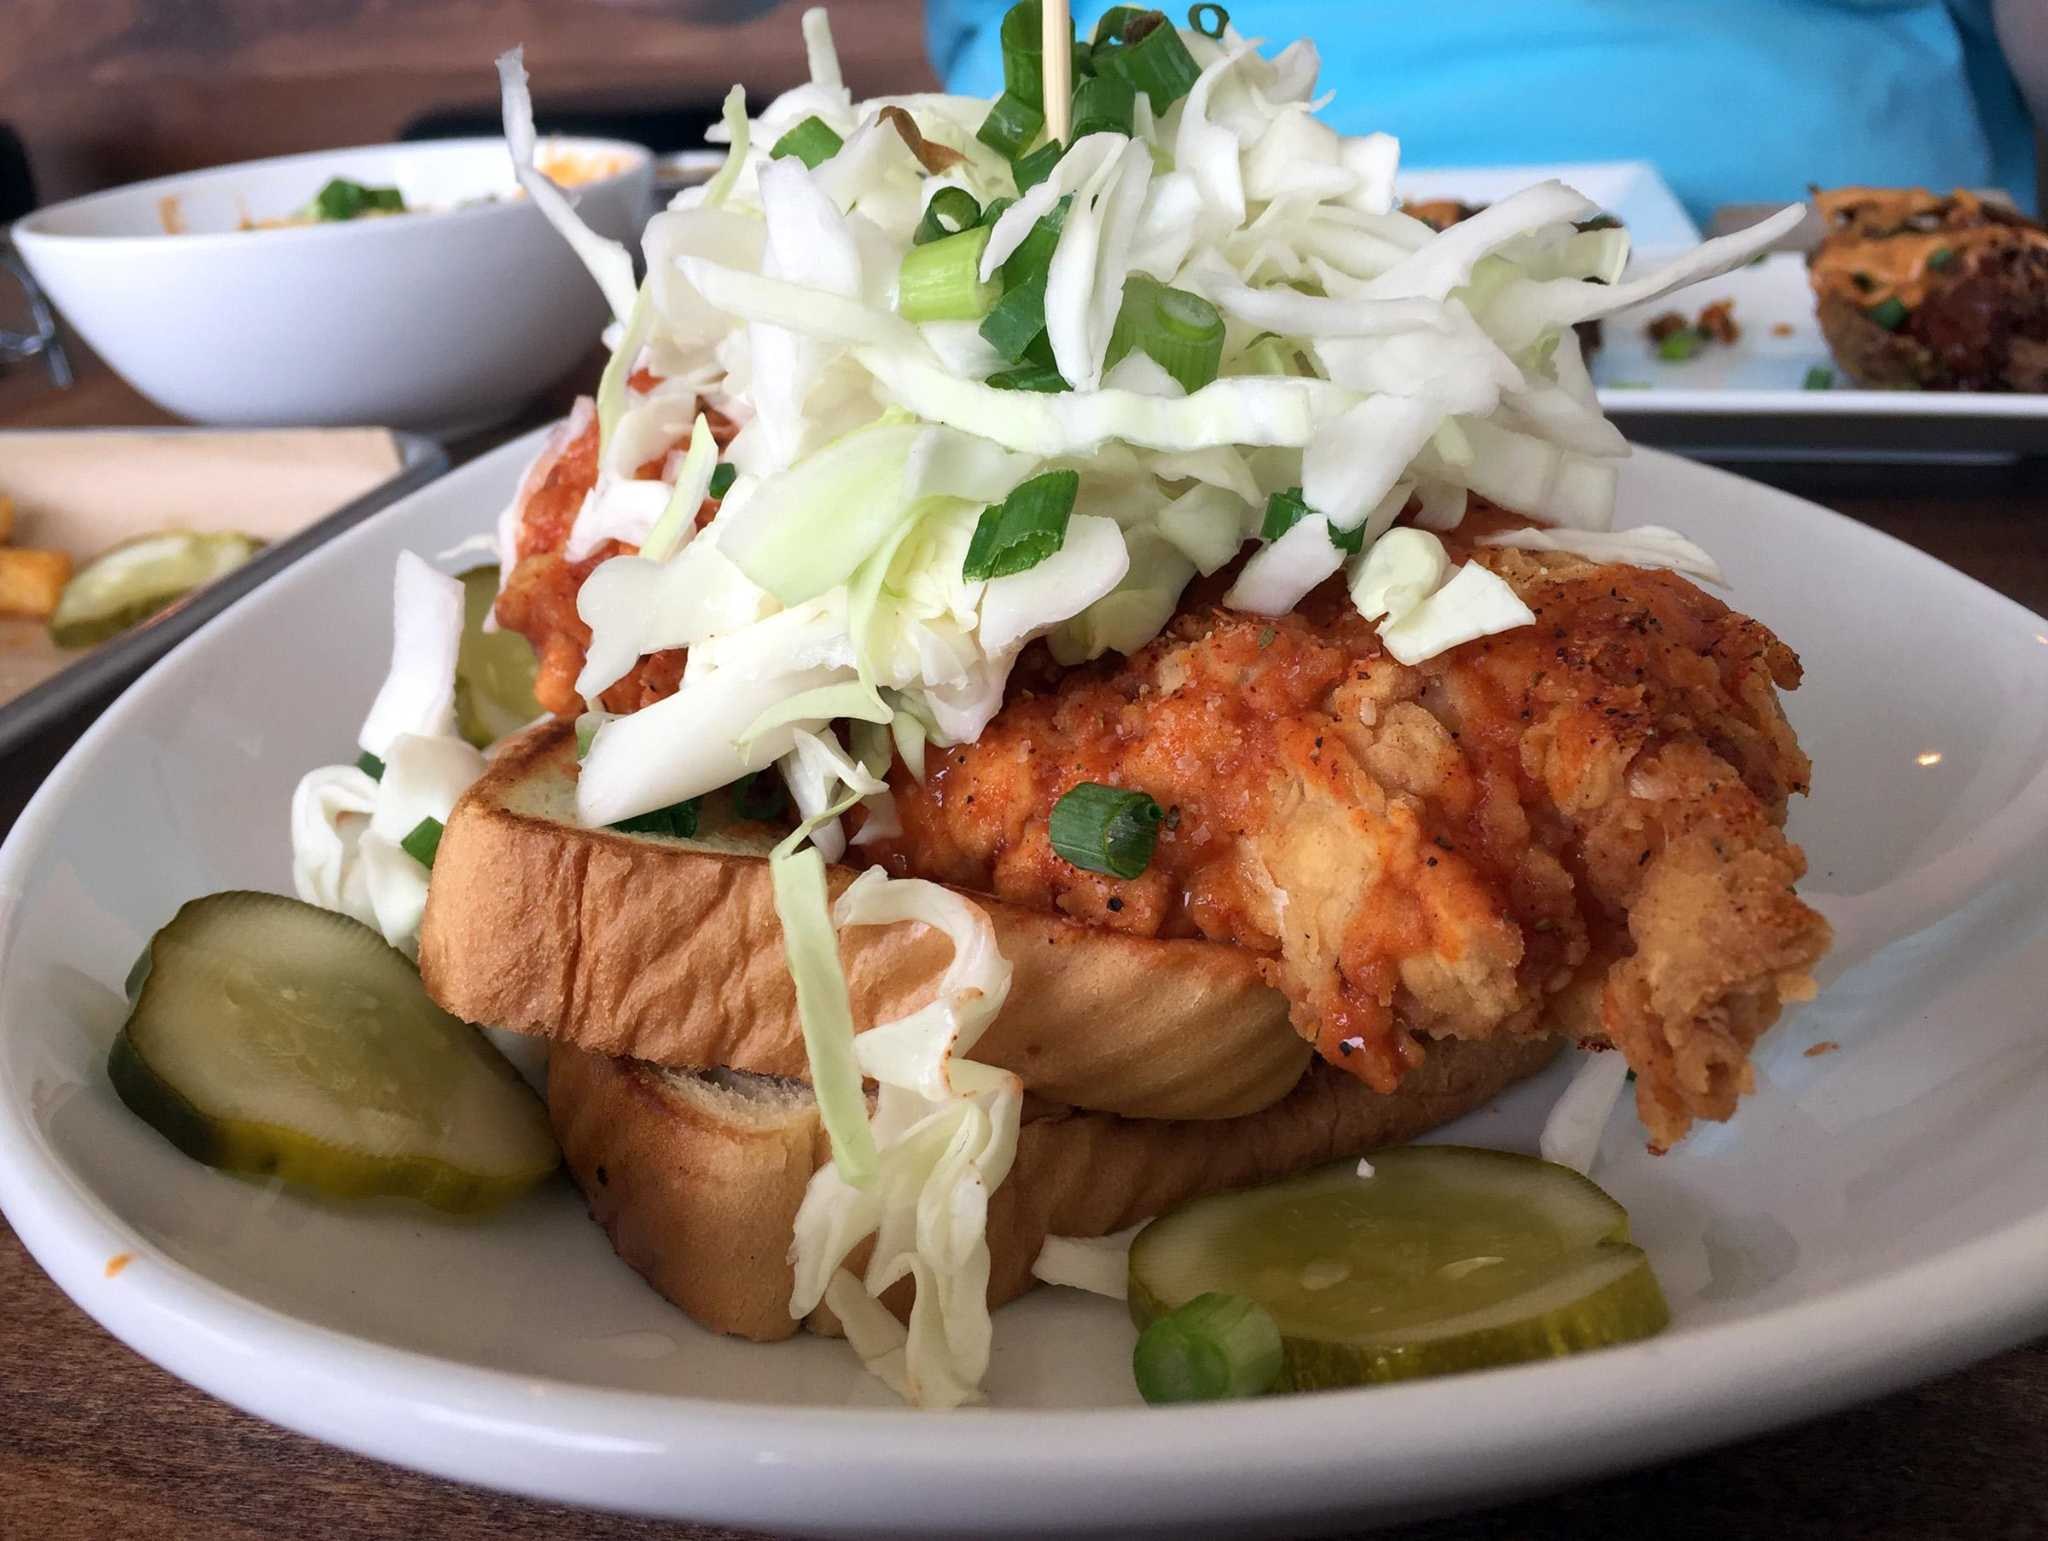 Review New Tobin Hill restaurant on point with upscale diner fare